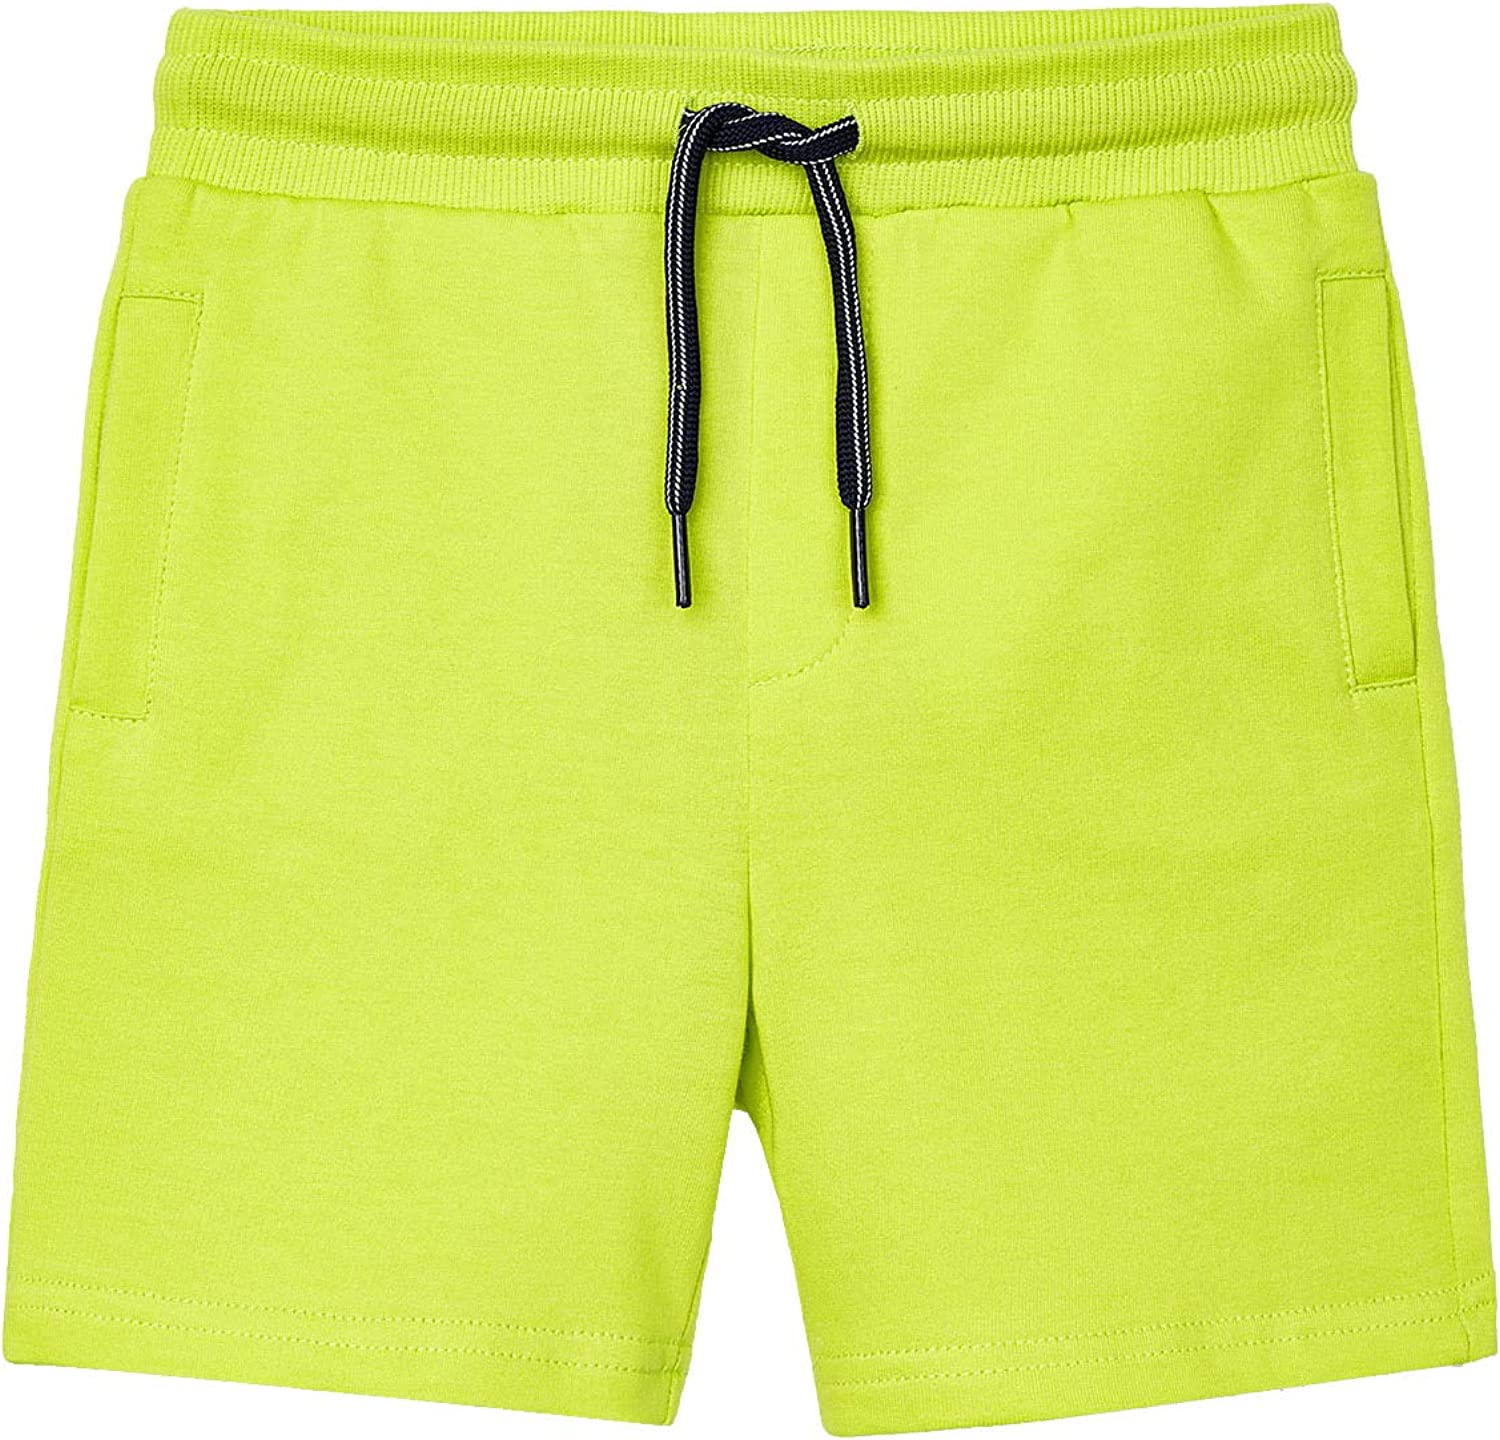 Special Campaign Mayoral Special Campaign - Basic Fleece Shorts Boys Green for 0611